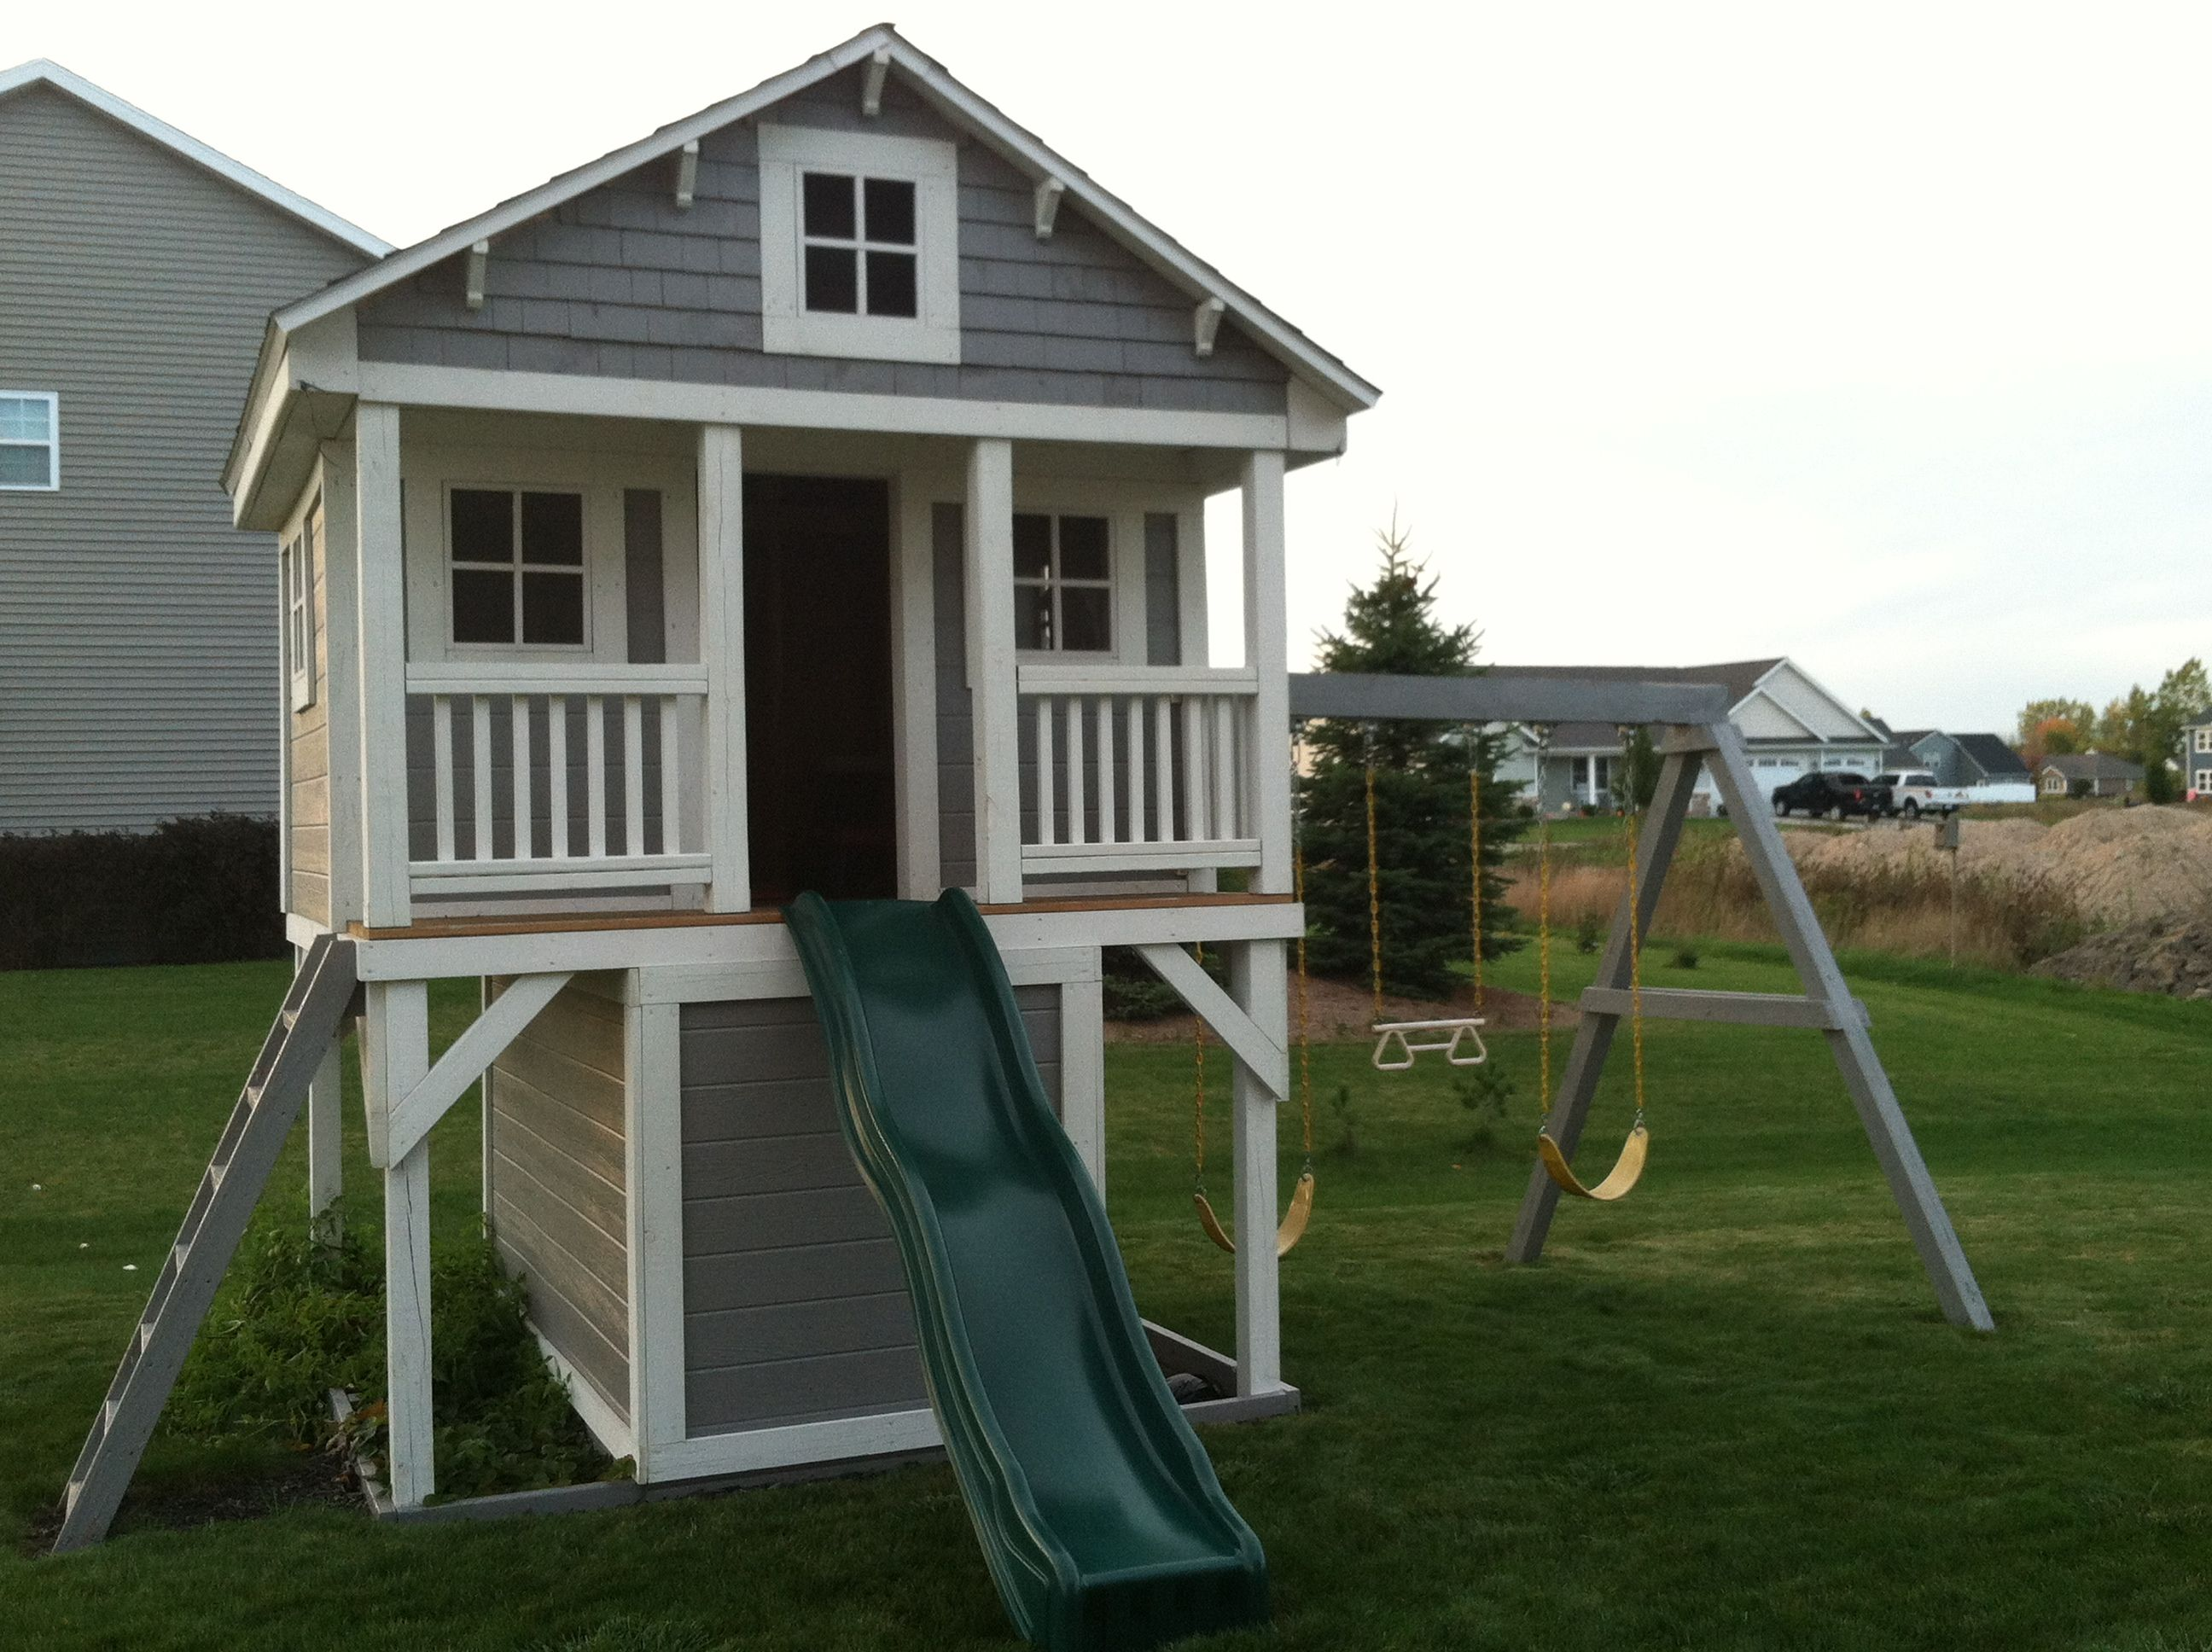 kids playhouse turn our swing set into this maybe outdoor ideas pinterest backyard. Black Bedroom Furniture Sets. Home Design Ideas